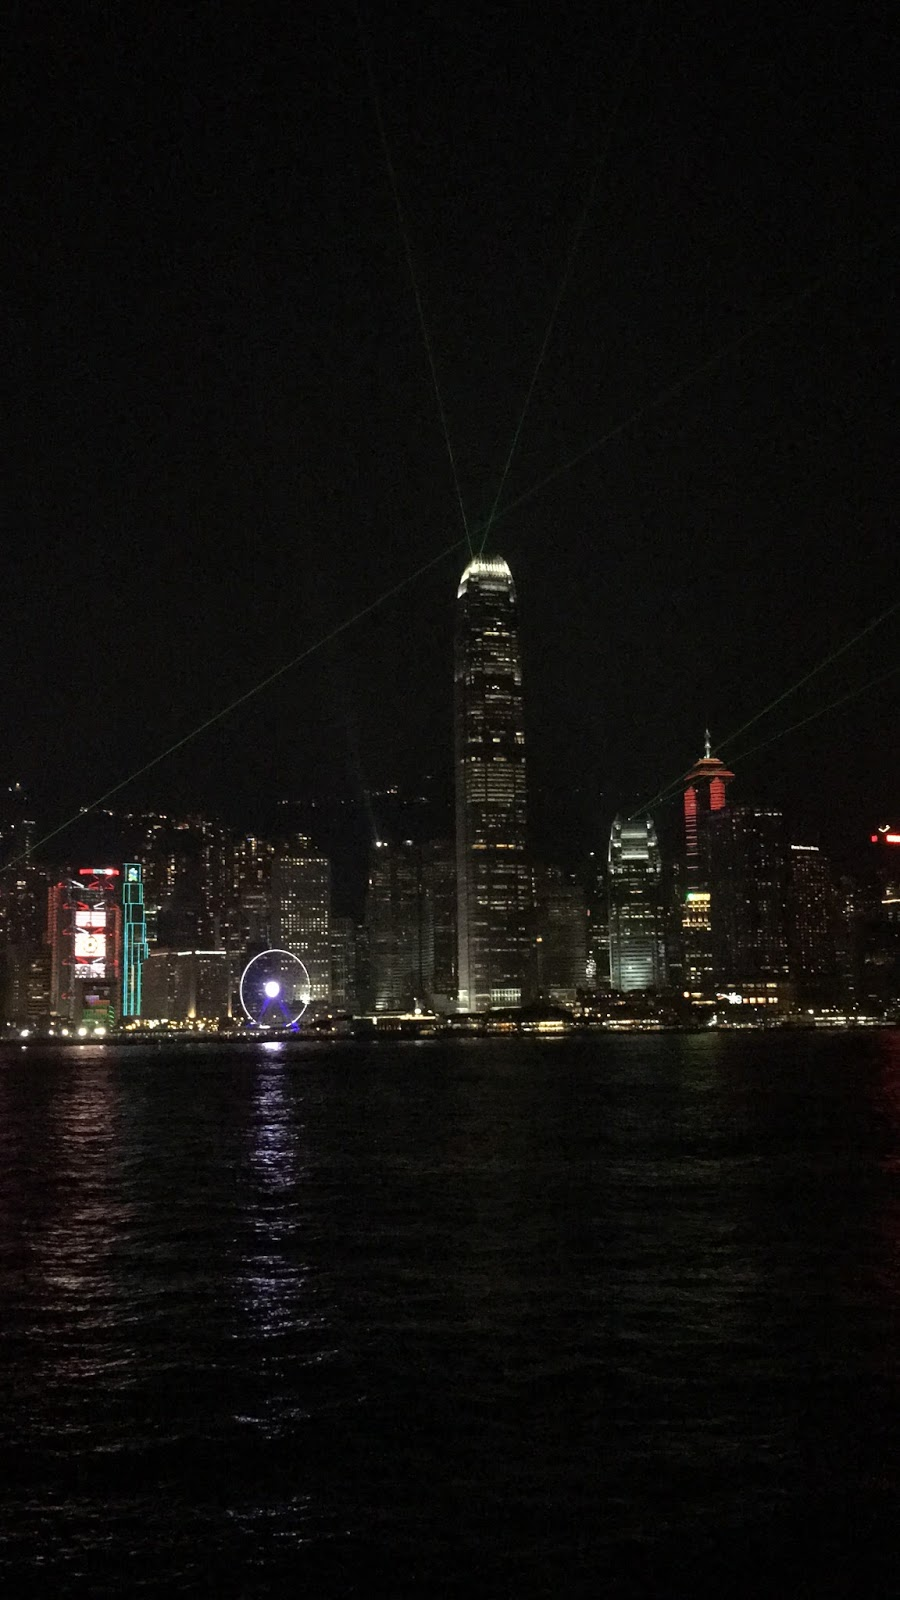 Symphony of Lights Show Hong Kong Skyline - Aspiring Londoner